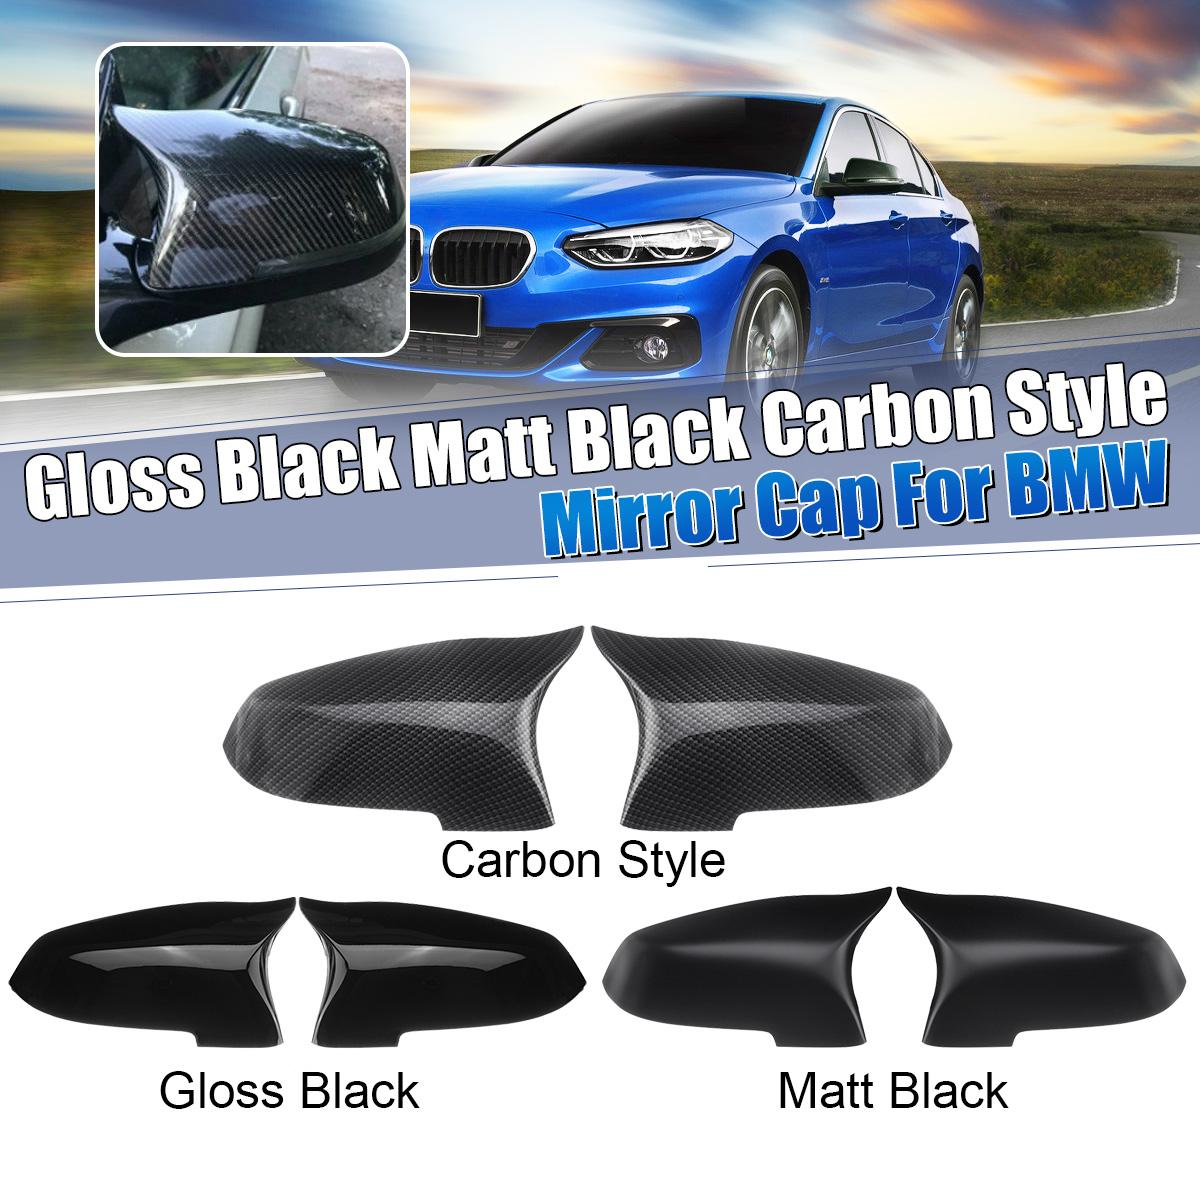 Pair Side Rearview Mirror Cover Cap For <font><b>BMW</b></font> 5 6 7 Series F10 F18 <font><b>F11</b></font> F06 F07 F12 F13 F01 2014 <font><b>2015</b></font> 2016 image